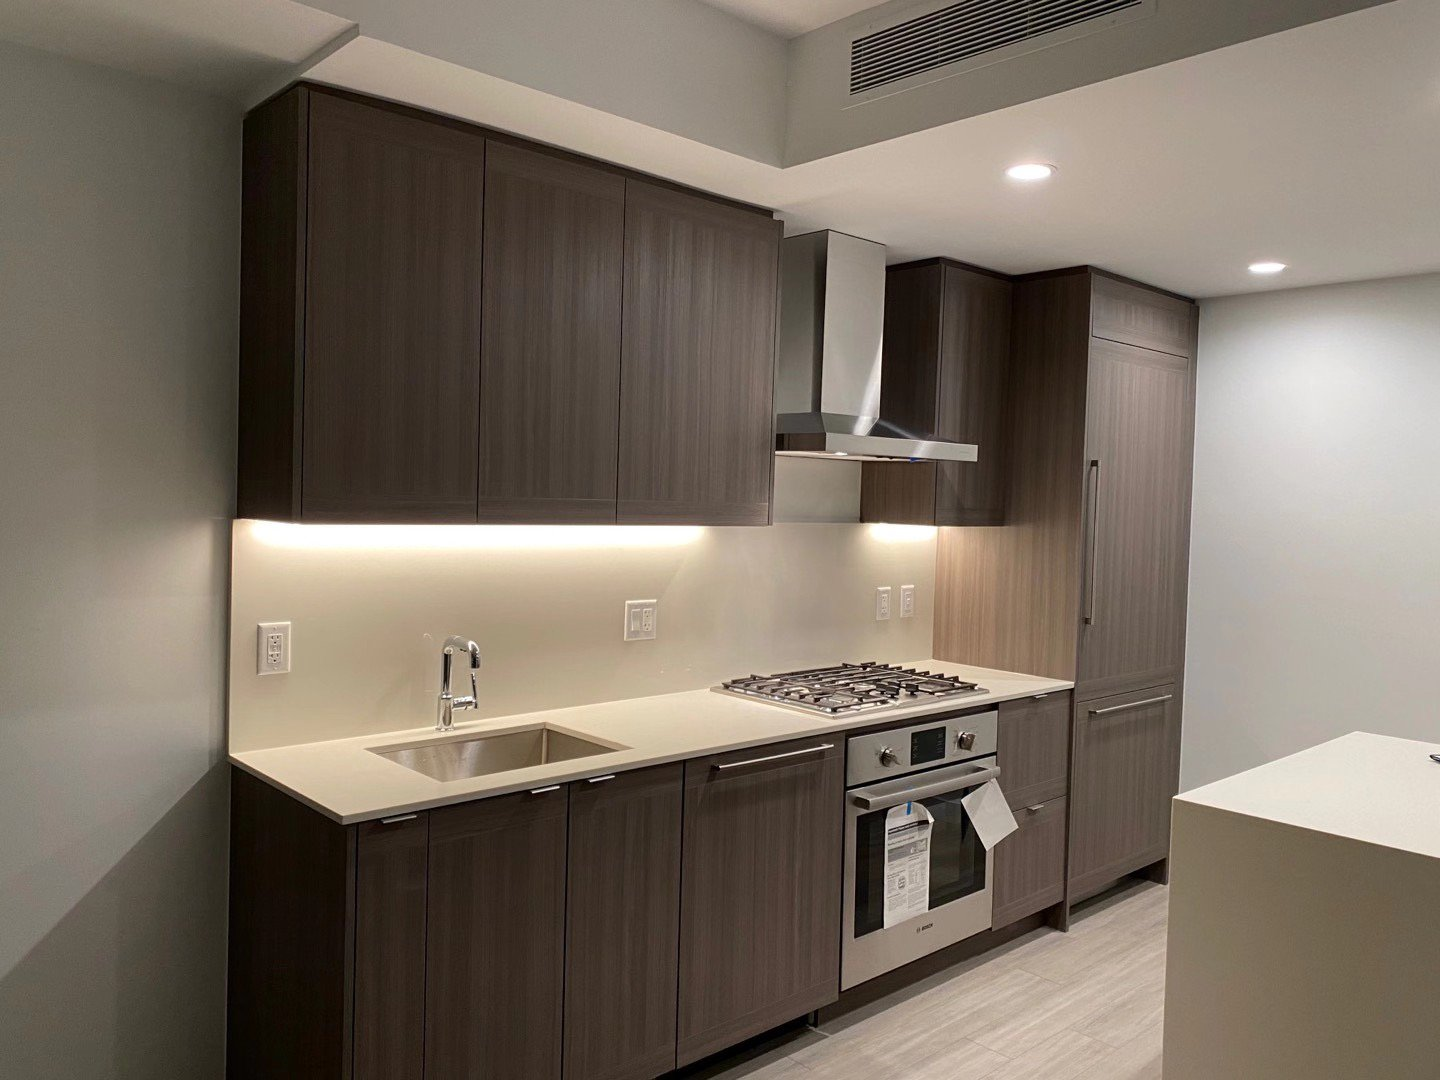 Main Photo: 24F-2351 Beta Ave in Burnaby: Brentwood Park Condo for rent (Burnaby North)